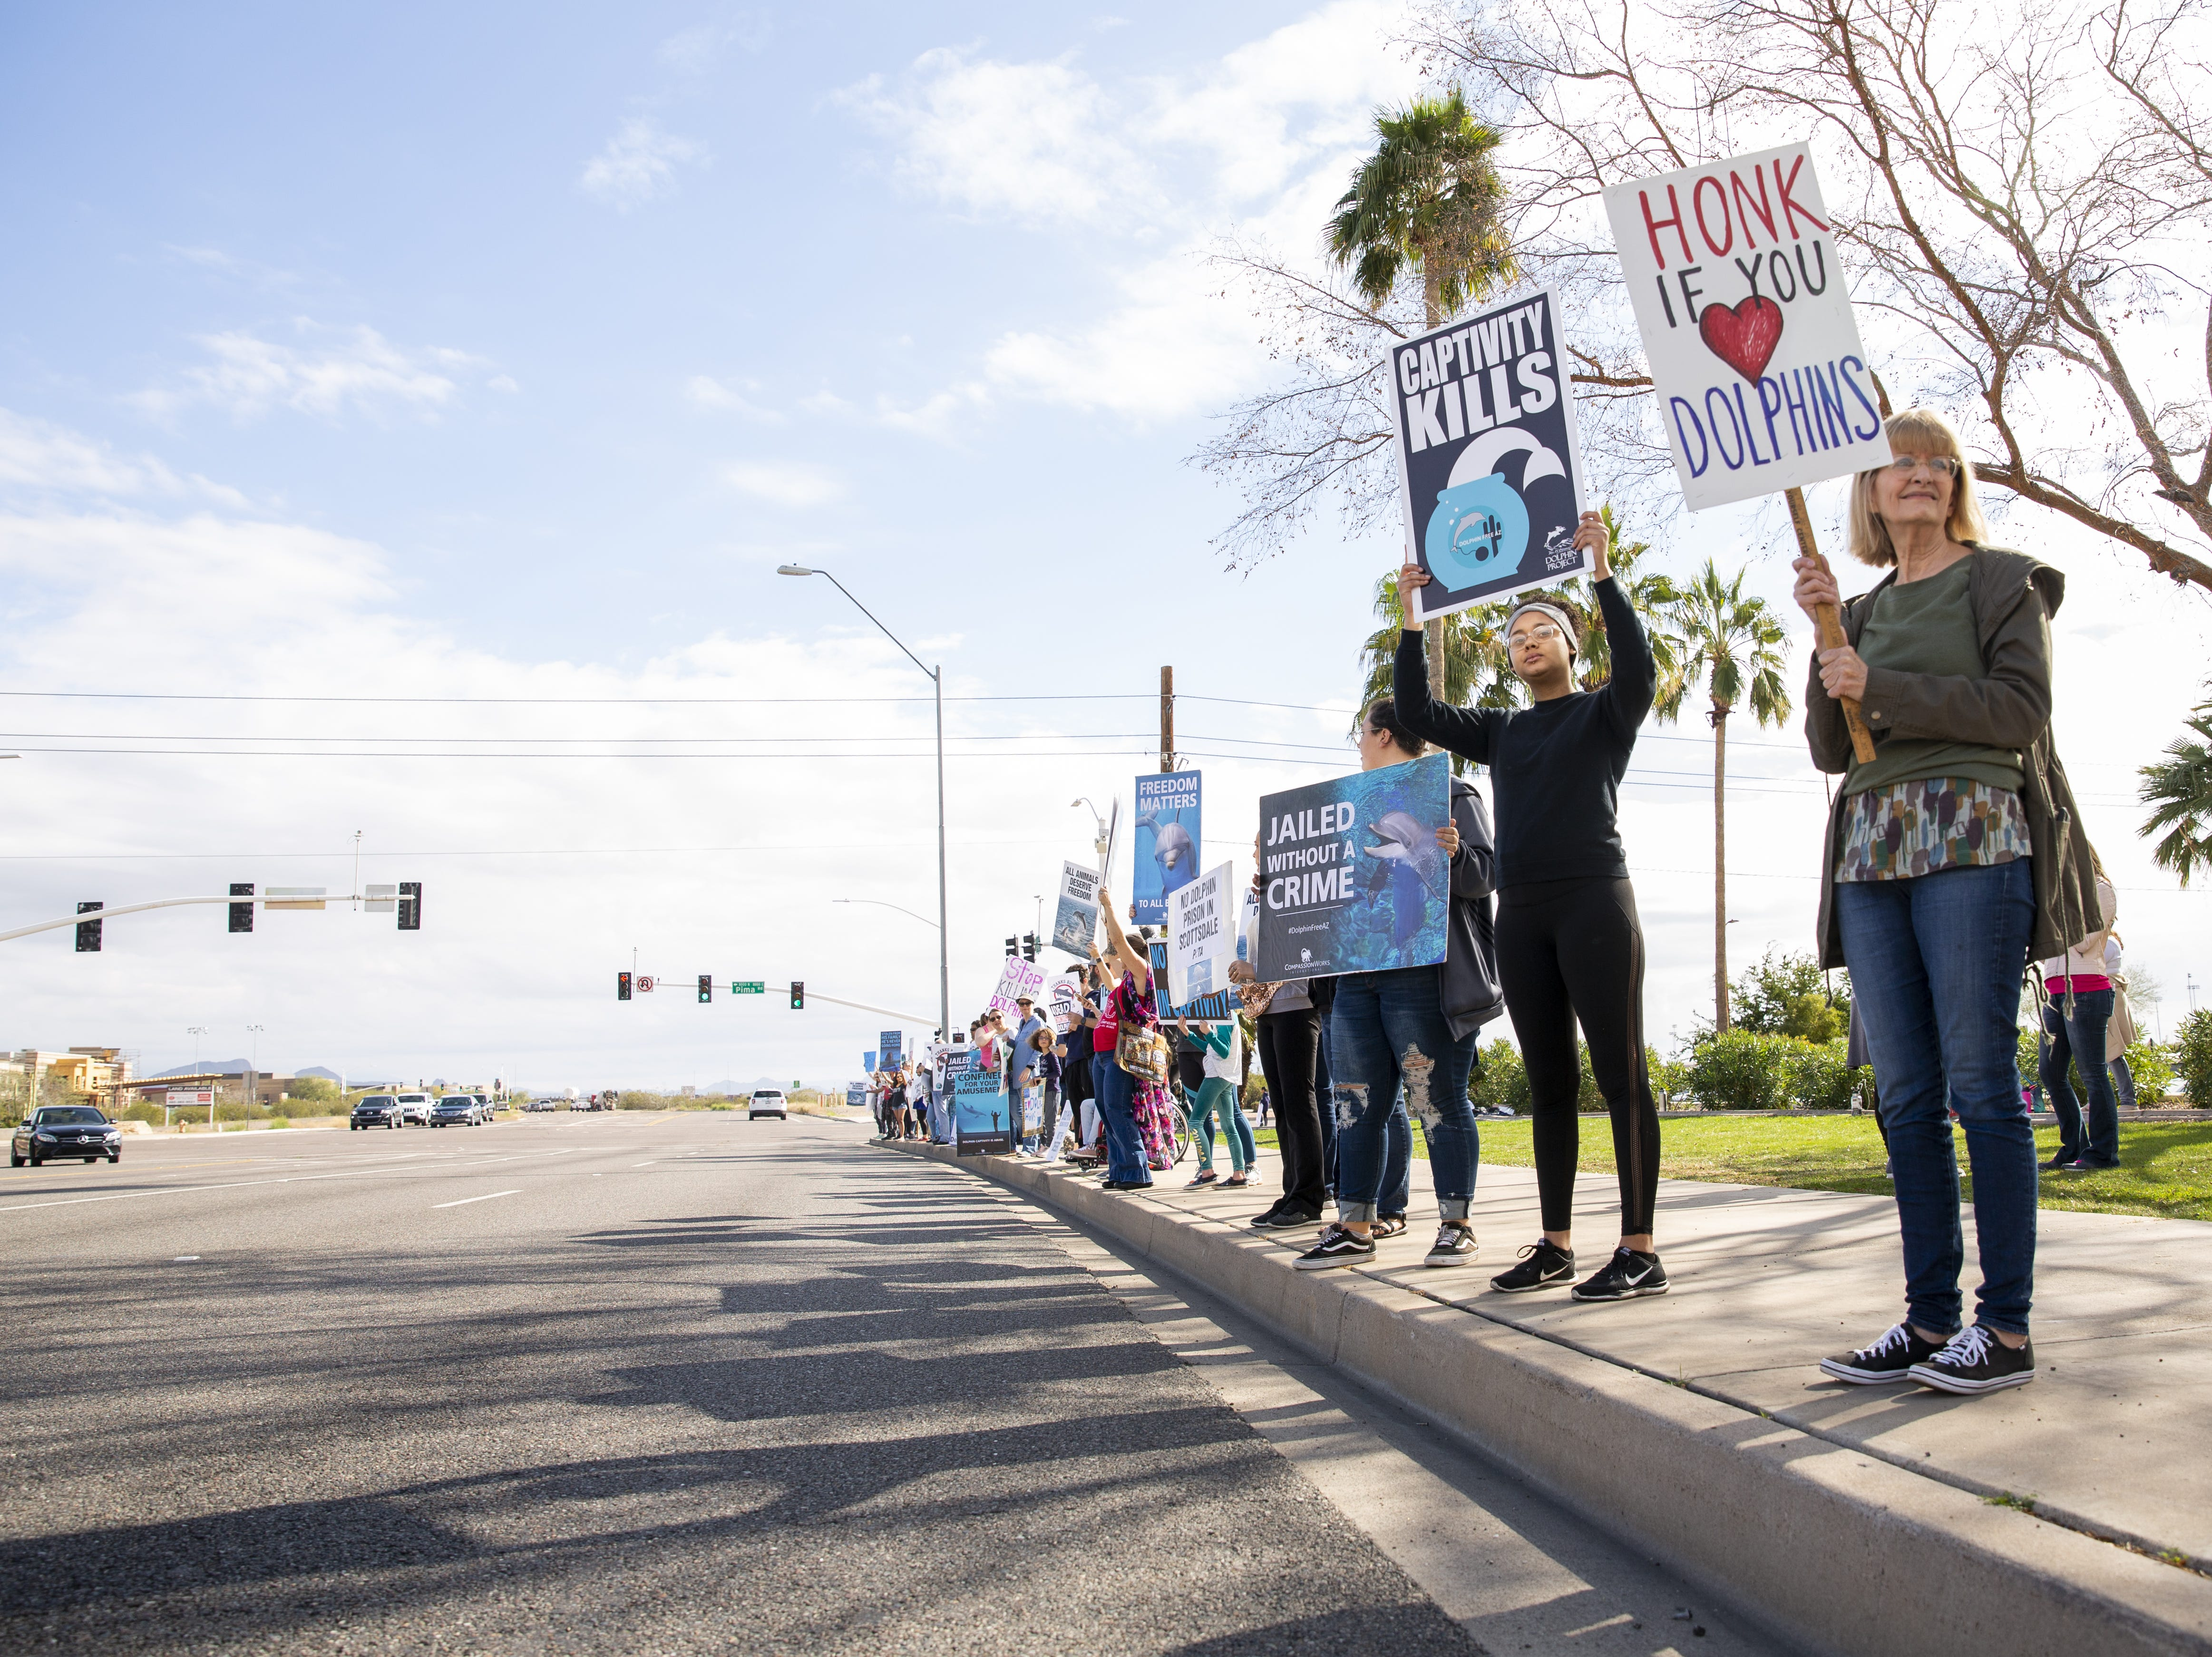 From right, Jeanne Carney and Chyna Douglas hold signs in protest of Dolphinaris at the intersection of E. Via de Ventura and N. Pima Road in Scottsdale on Feb. 2, 2019. The protest was prompted by four dolphin deaths in less than two years.